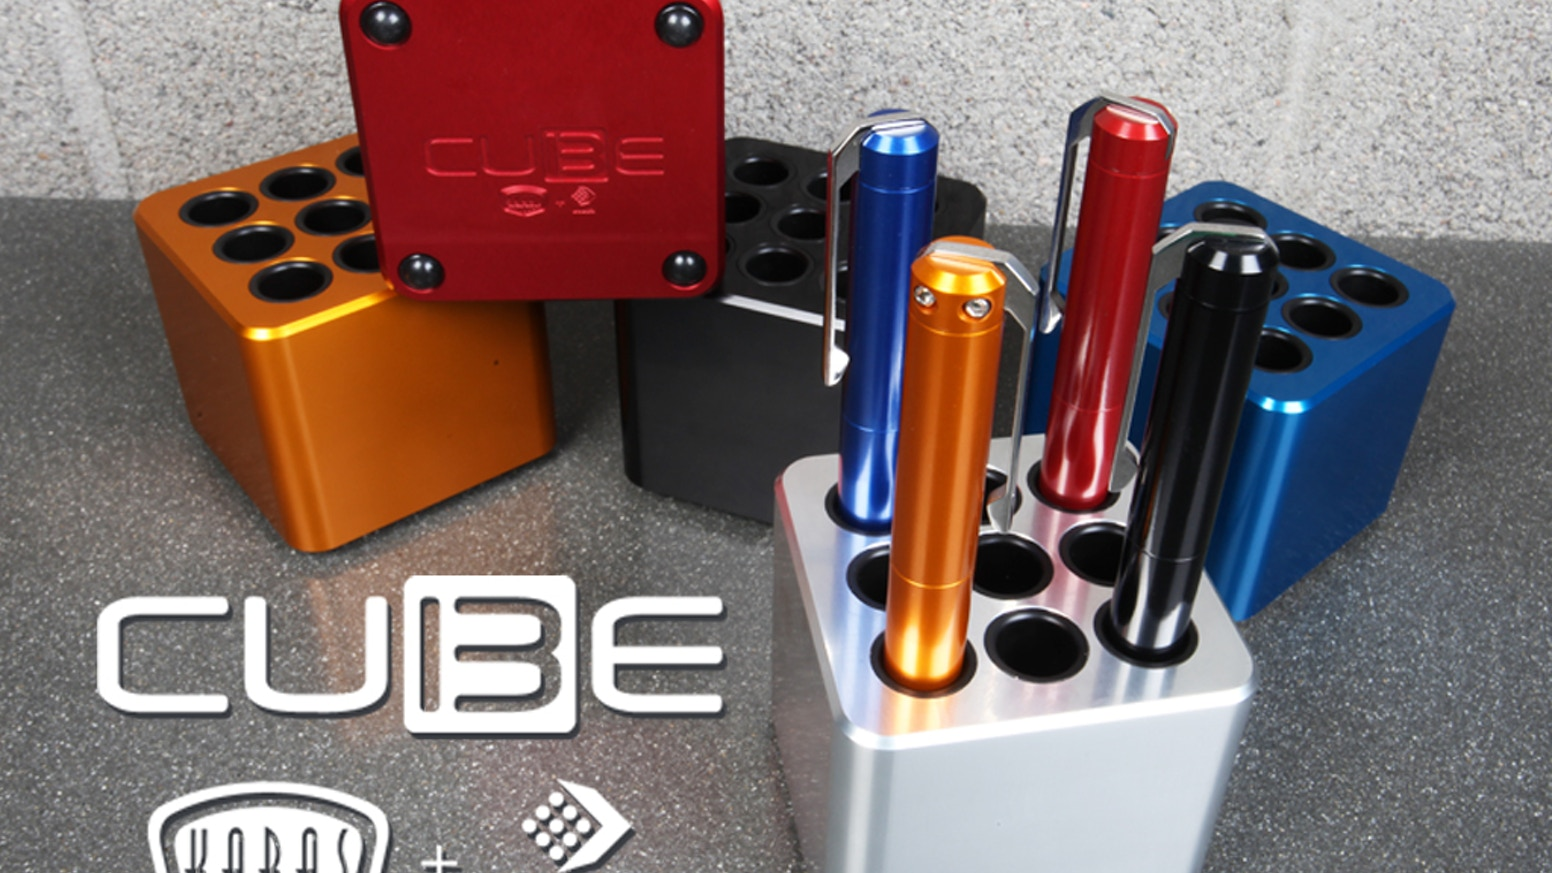 The CUBE is a machined aluminum pen stand with Delrin inserts and custom finishes to display and protect your pen collection.